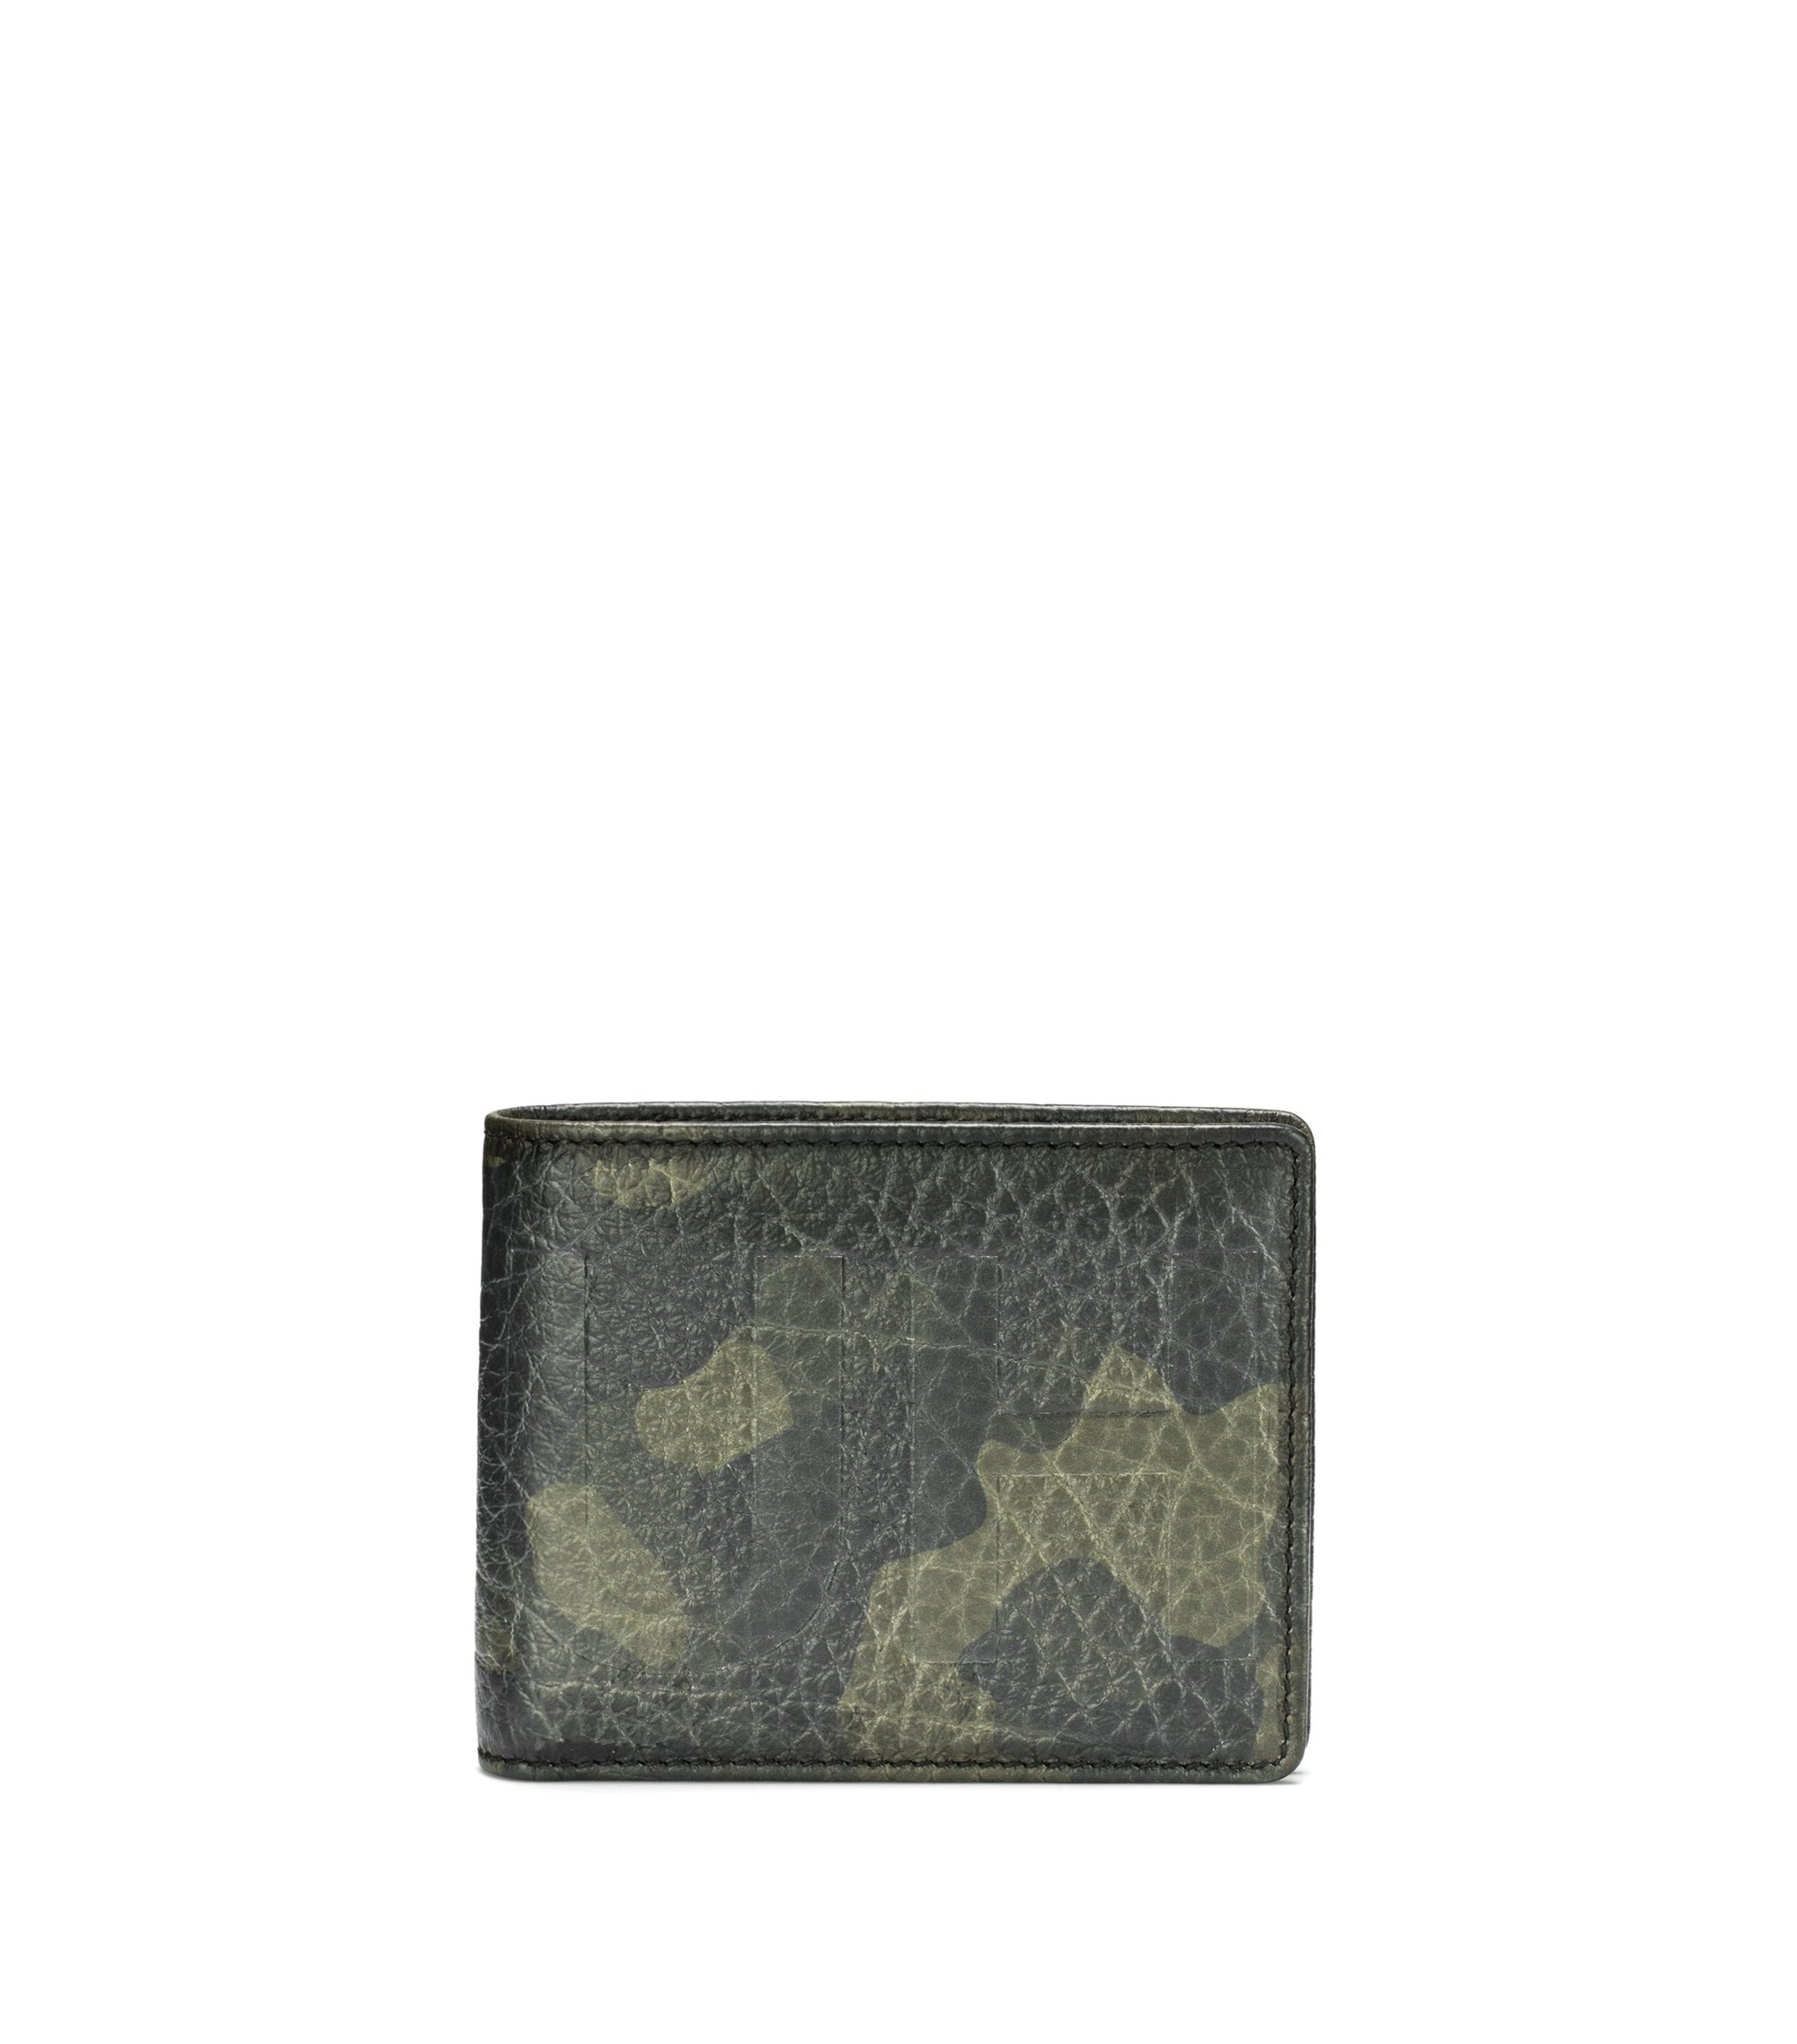 Billfold wallet in camouflage-print leather with embossed logo, Patterned